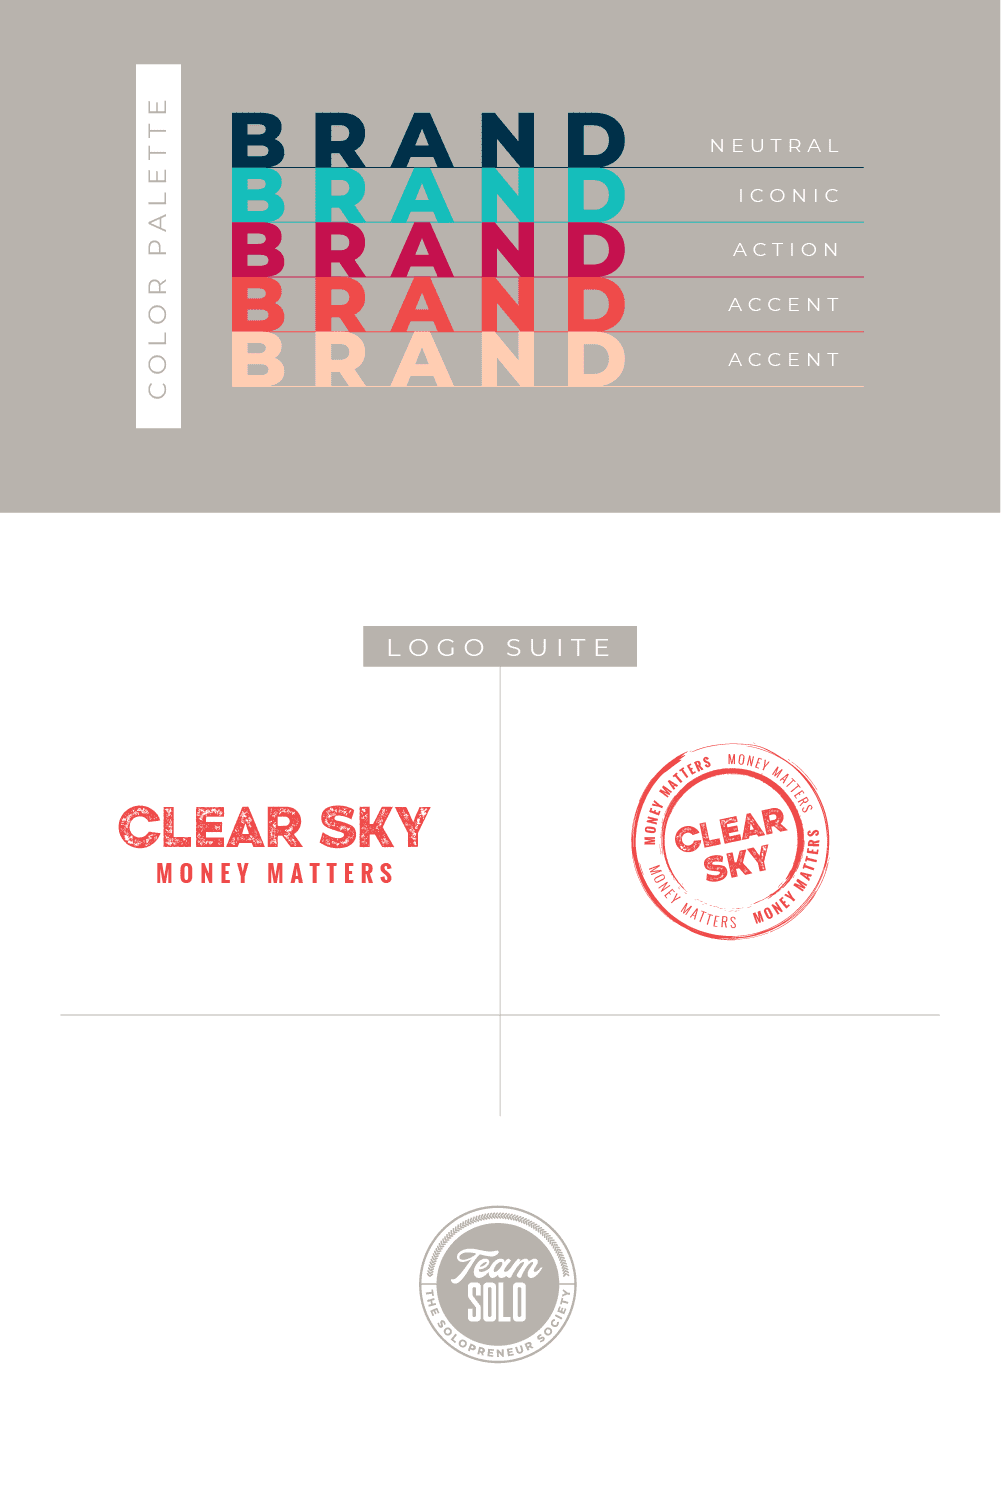 Clear Sky Money Matters Brand Identity Design